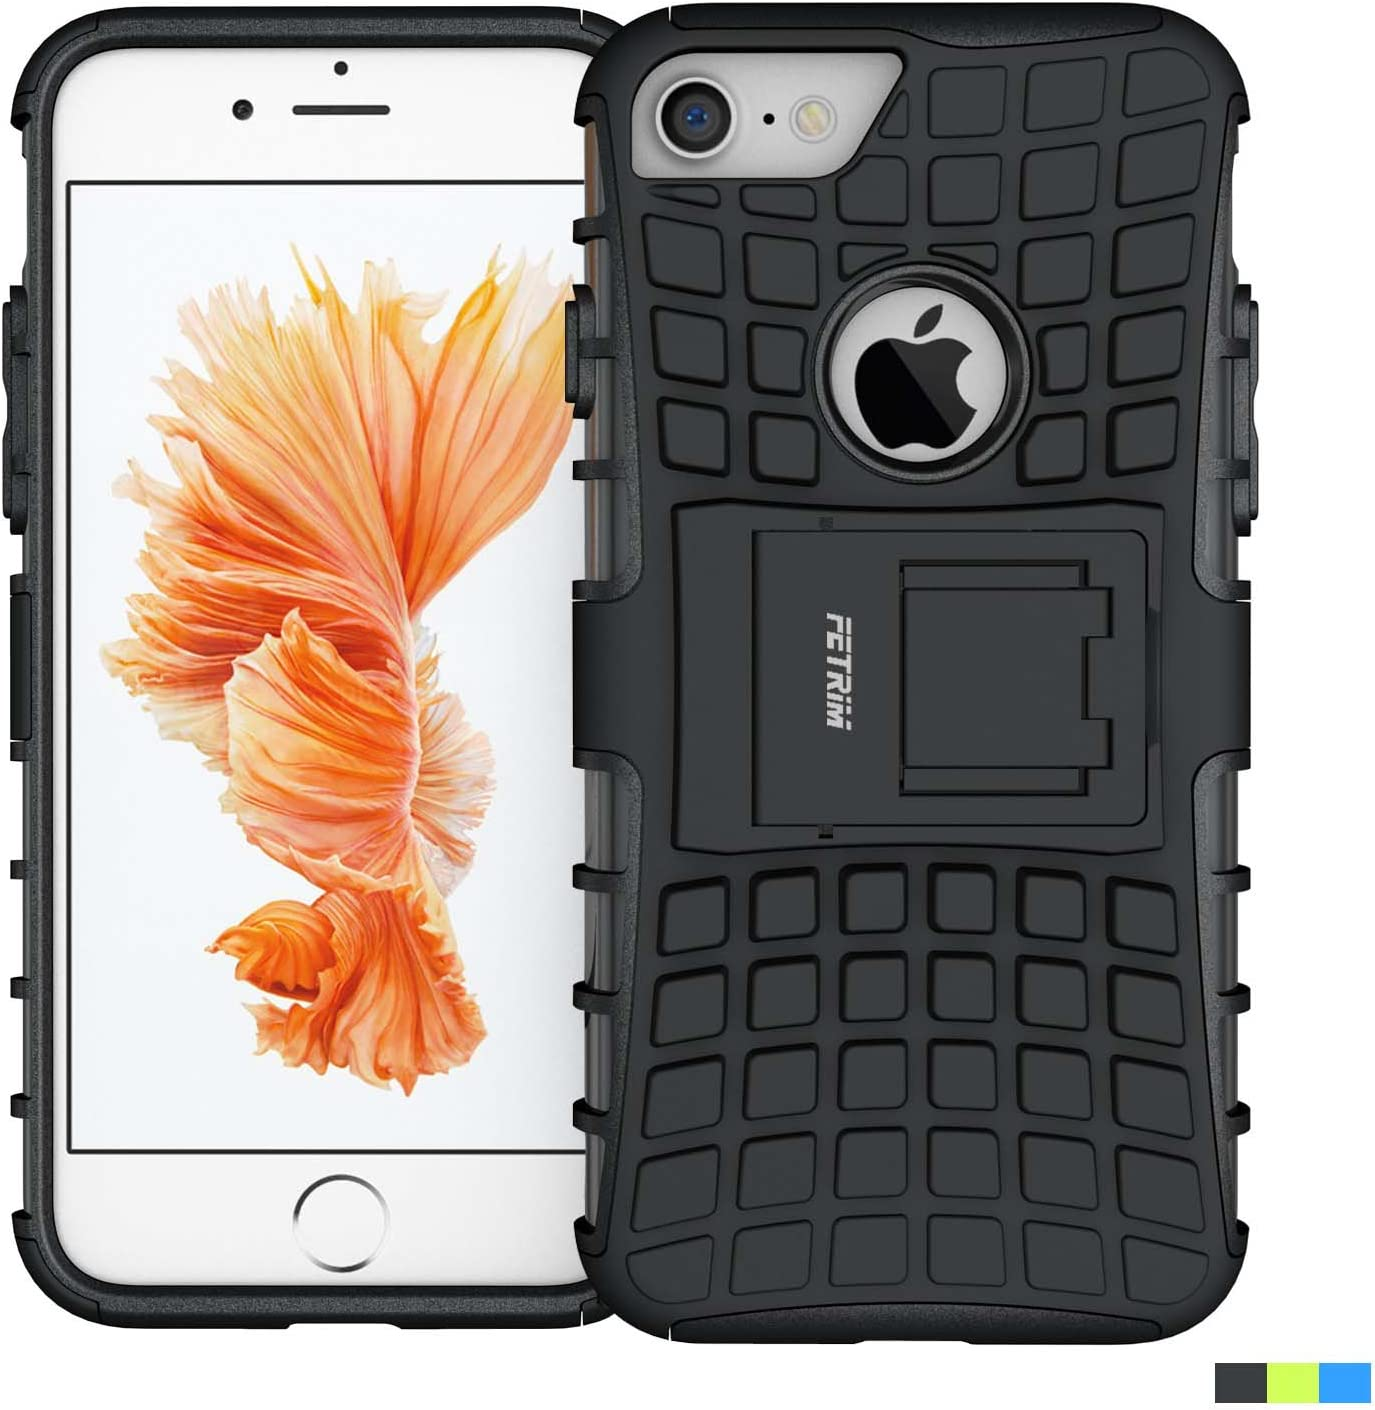 iPhone 7 Case,Fetrim Rugged Dual Layer Shockproof TPU Case Protective Cover for Apple iPhone 7/8 with Built-in Kickstand (Black)